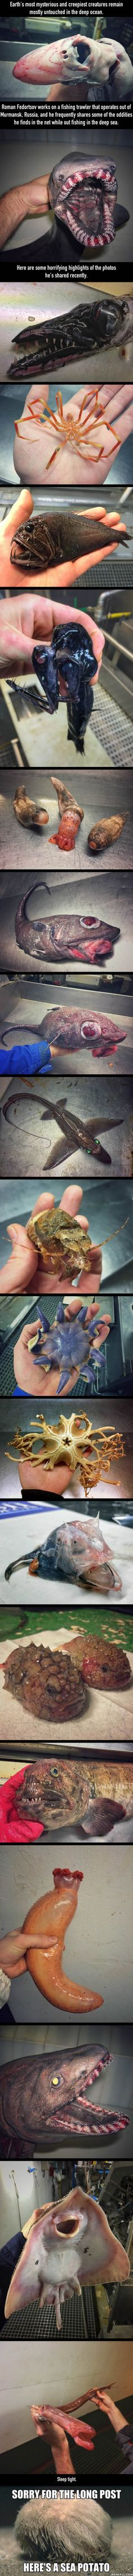 Russian Deep-Sea Fisherman's Discoveries Will Fuel Your Nightmares (By Roman Fedortsov ) - 9GAG